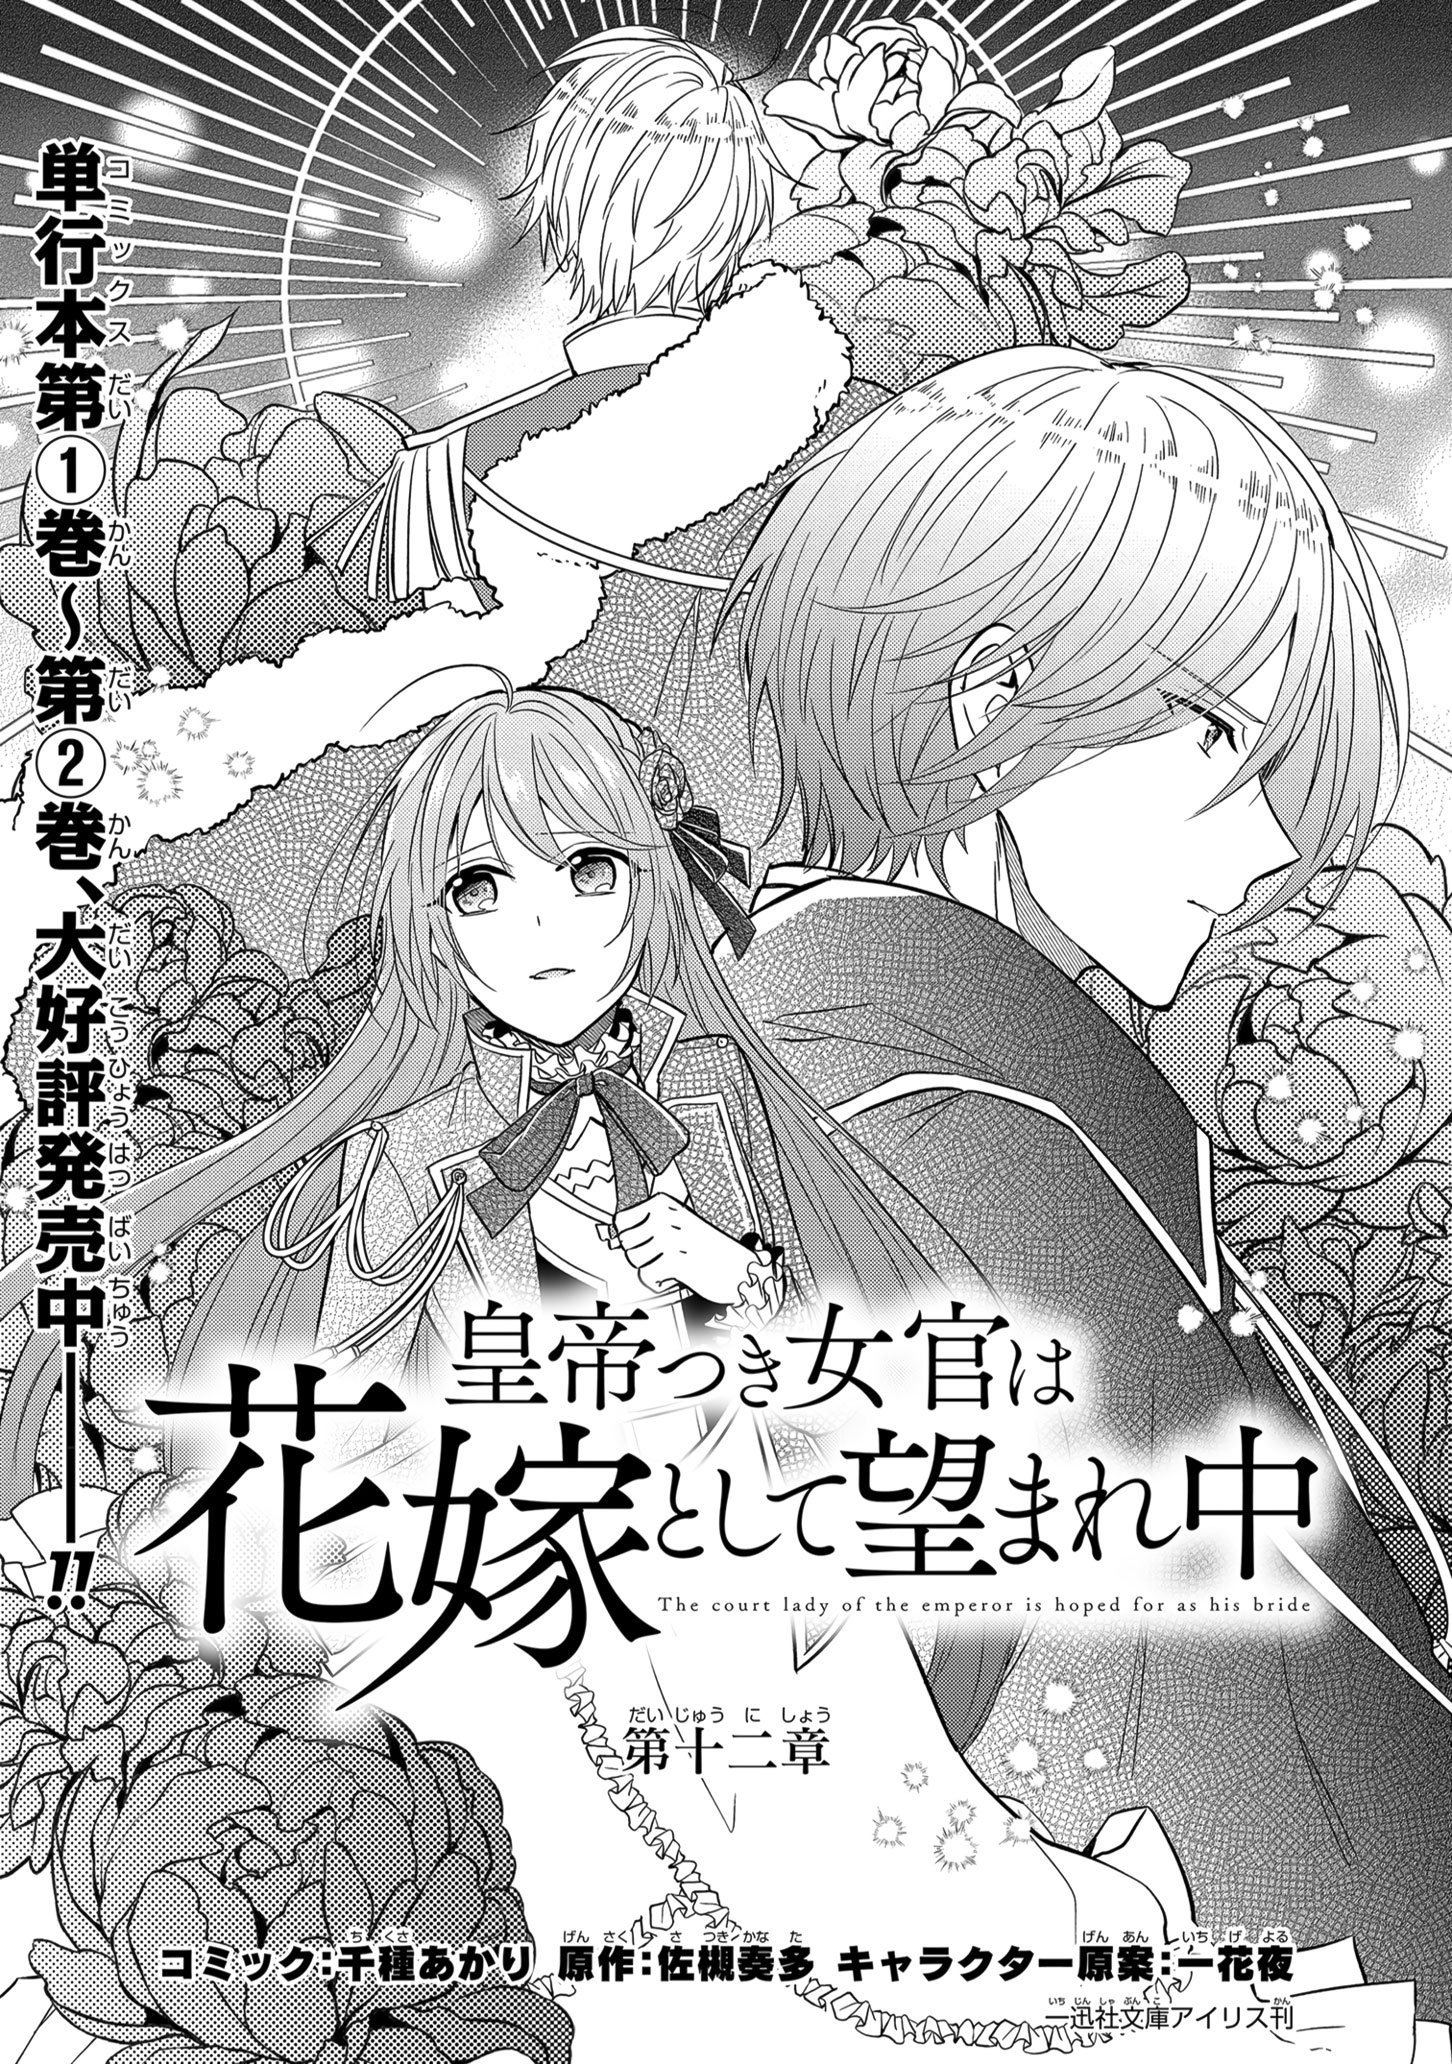 Manga The Emperor Hopes for the Court Lady as His Bride - Chapter 12 Page 2